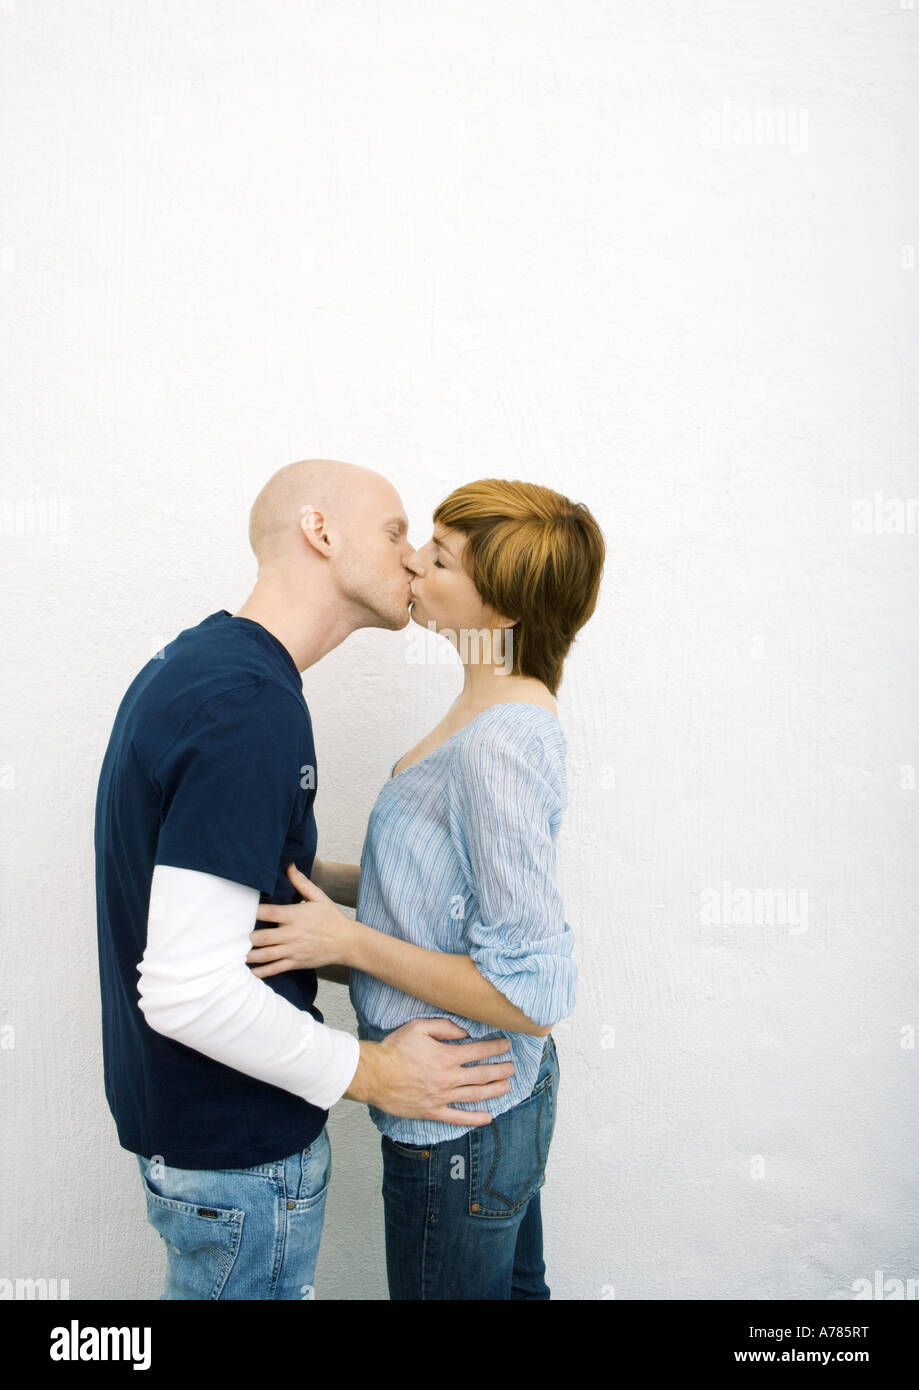 Young Couple Kissing Hands On Each Others Waists Stock Image